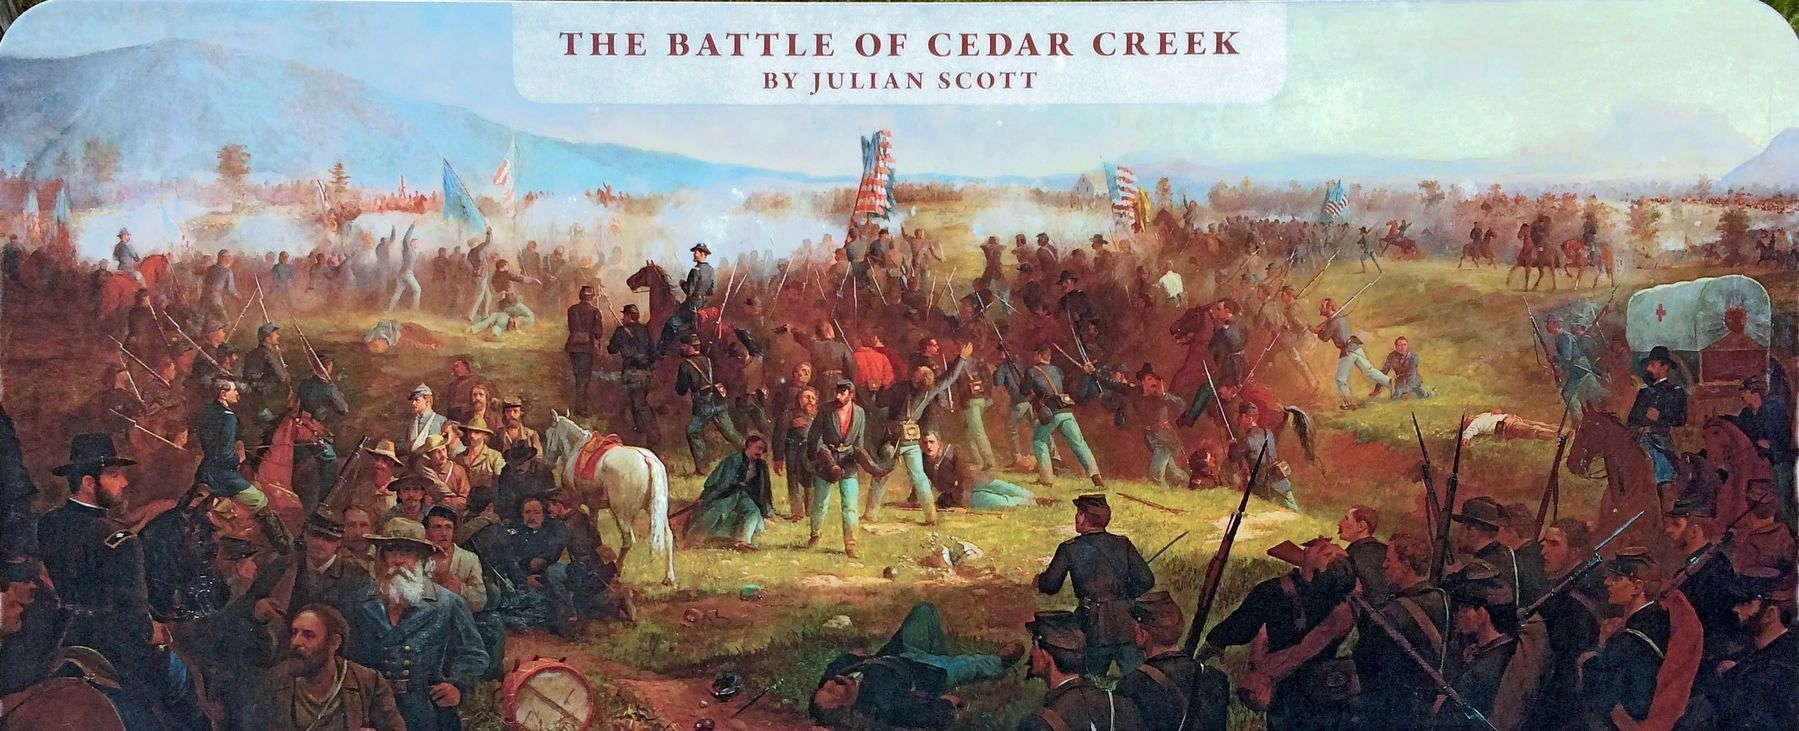 The Battle of Cedar Creek<br>by Julian Scott image. Click for full size.